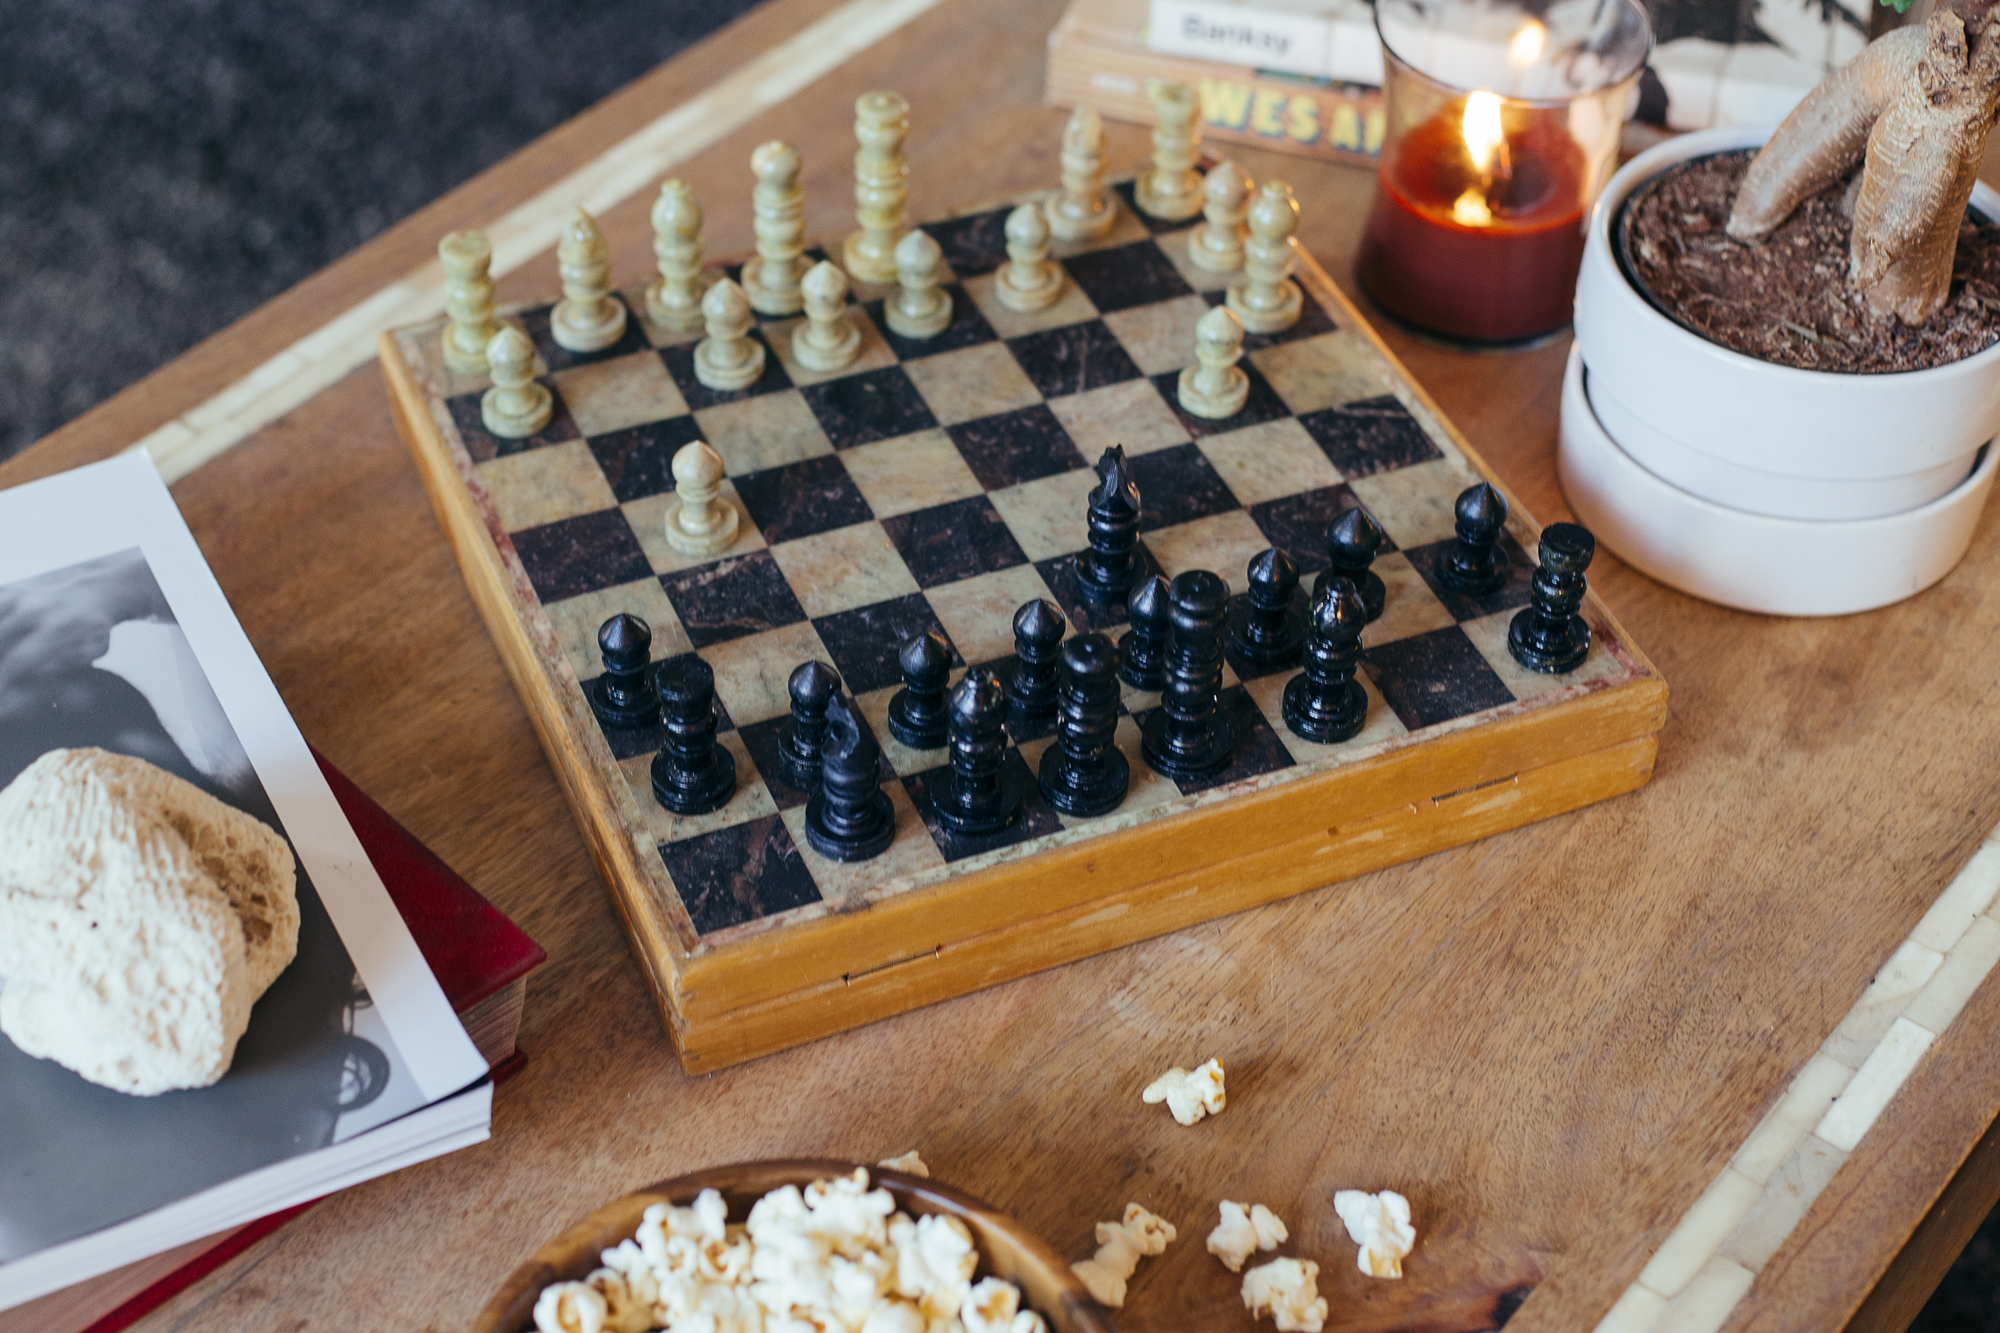 Must Have Board Games As Coffee Table Decor Designed